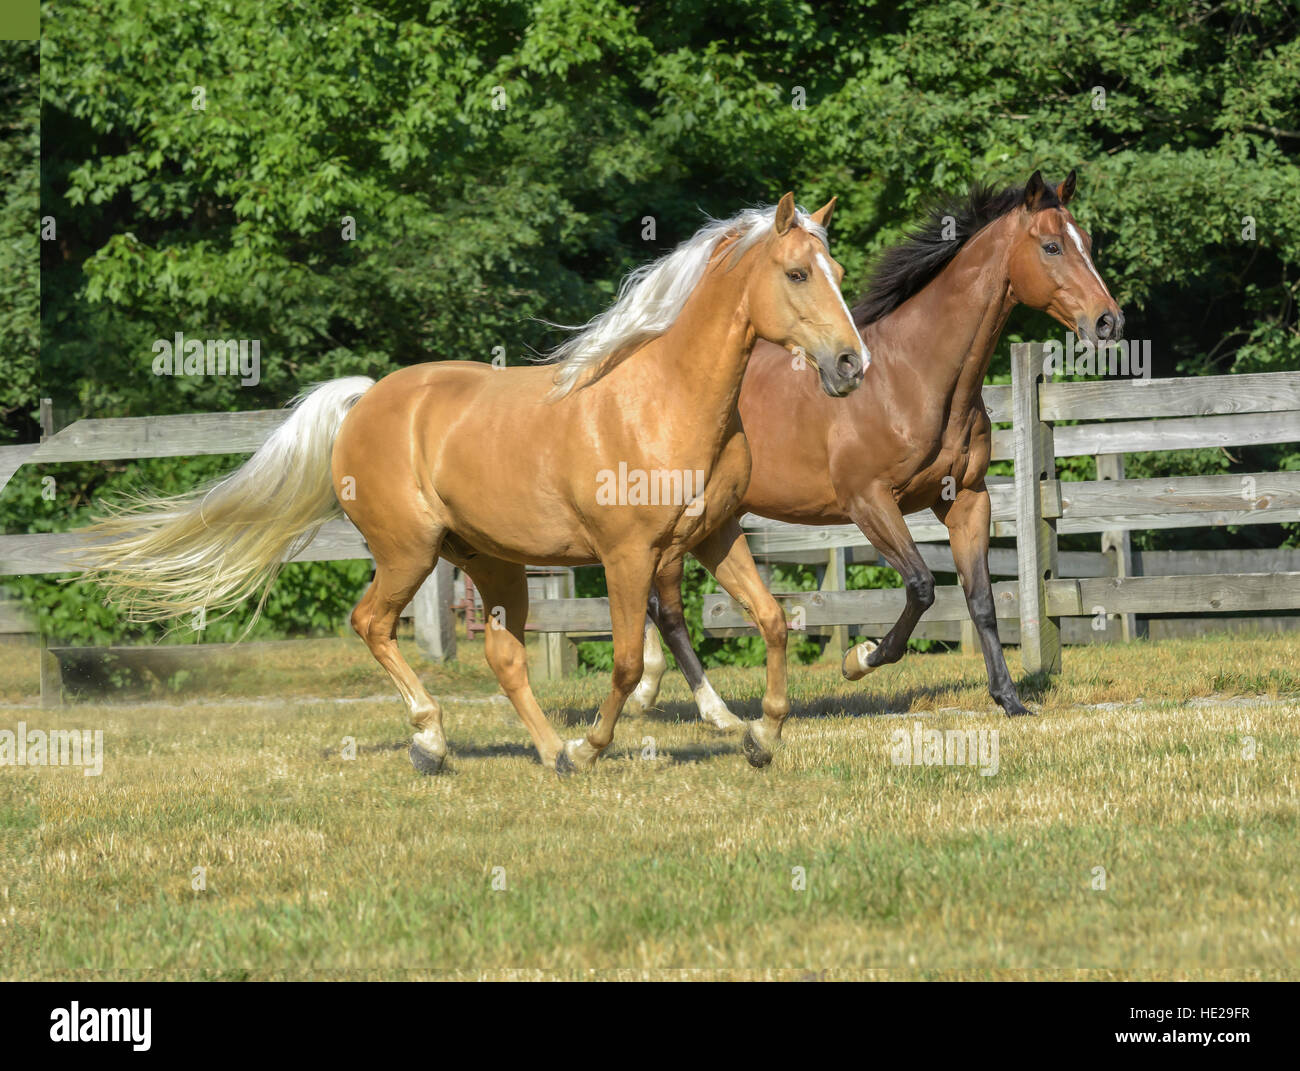 Thoroughbred and Tennessee Walking Horse geldings - Stock Image